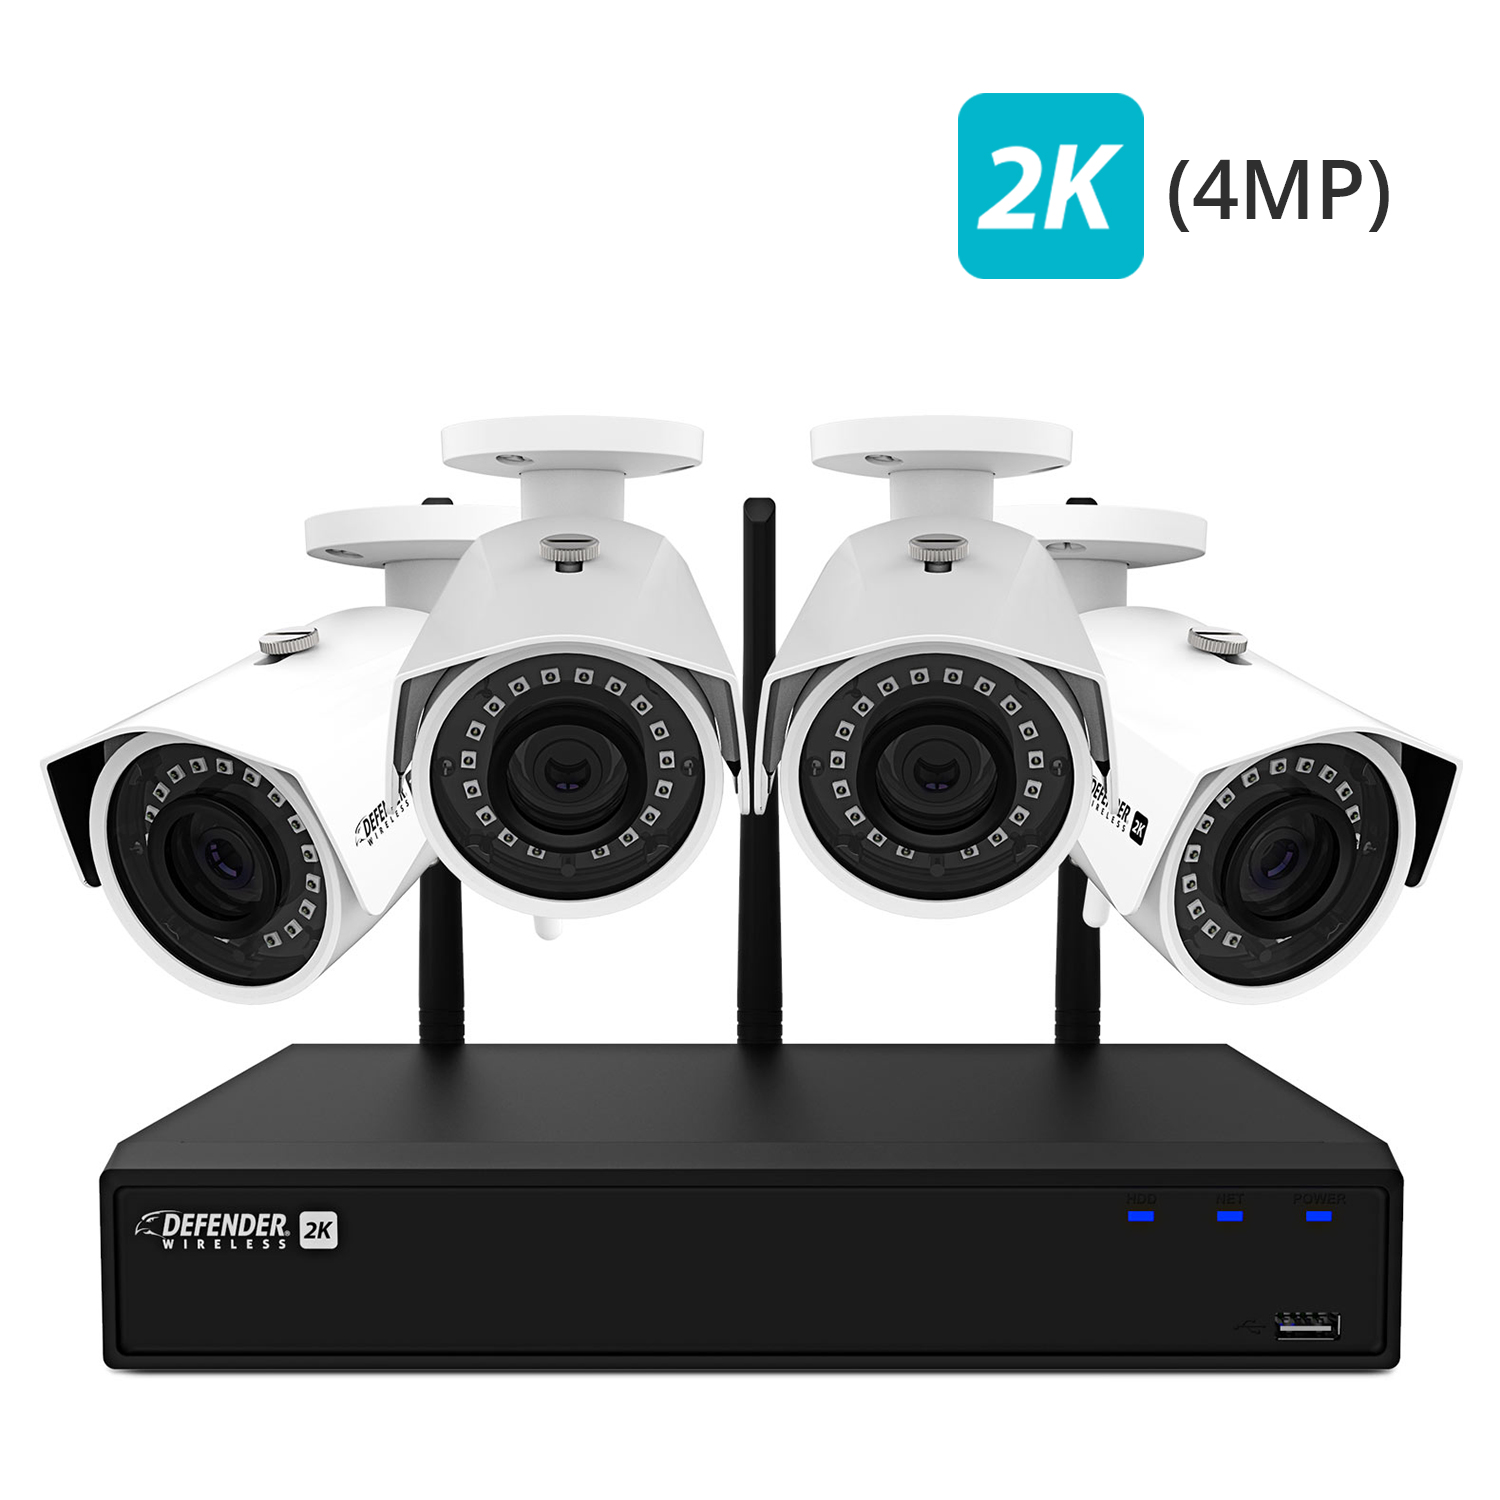 Defender 2K (4MP) Wireless 4 Channel 1TB NVR Security System with Remote Viewing, Motion Detection and 4 Wide Angle, Night Vision Wi-Fi Cameras